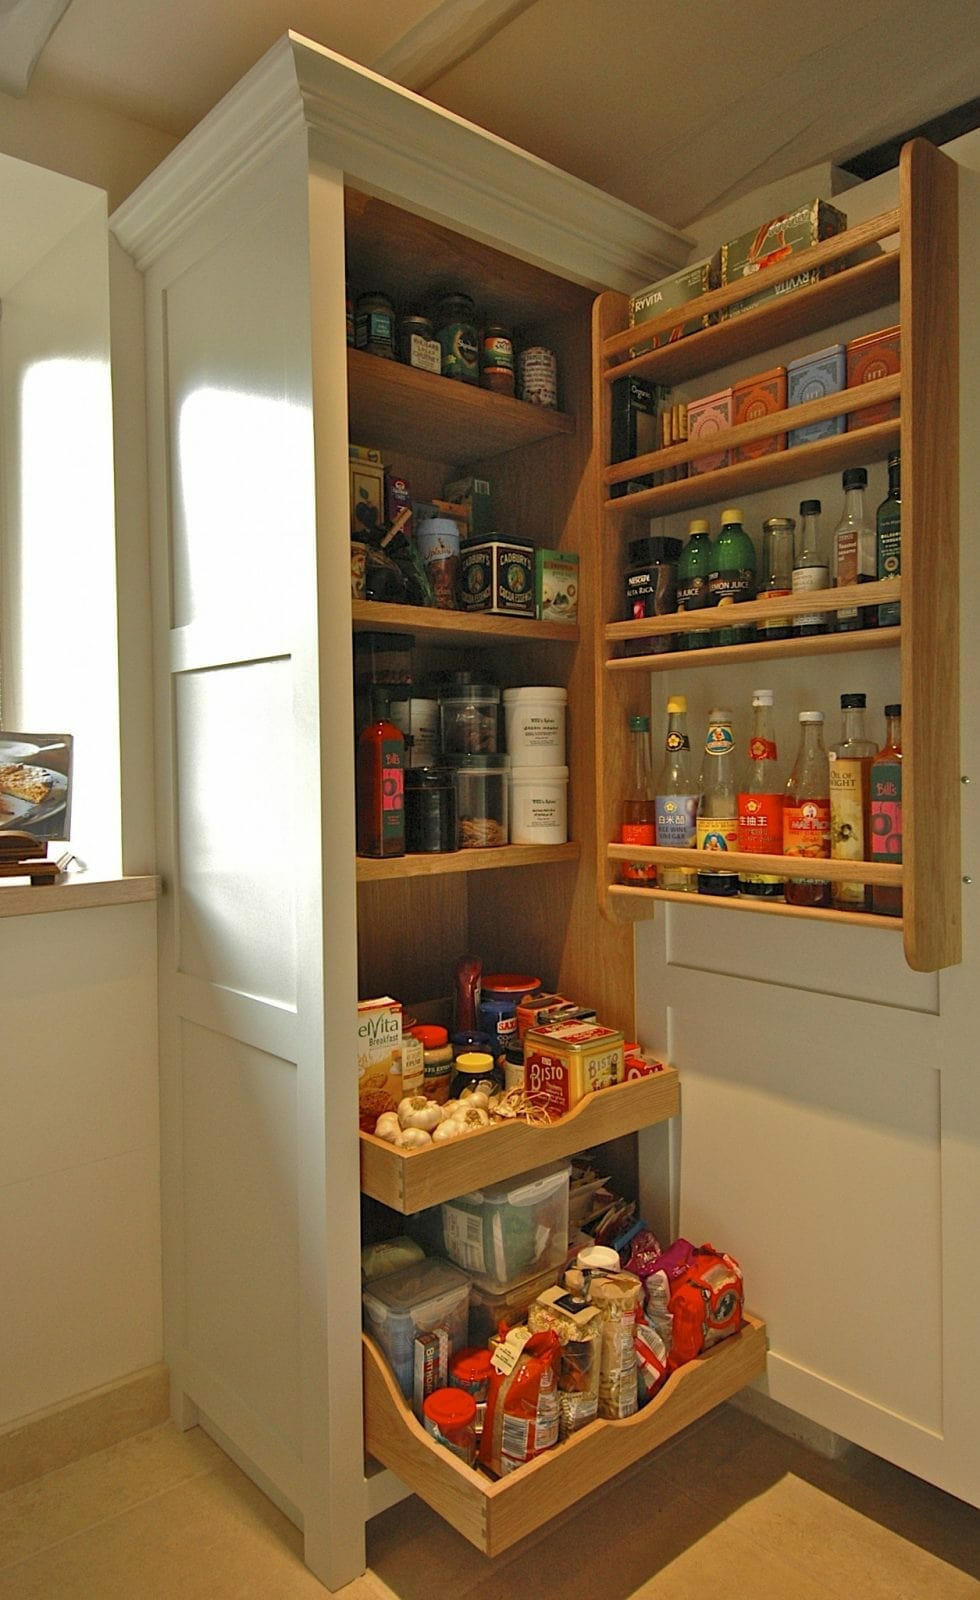 Food Pantry Ideas For Small Kitchens